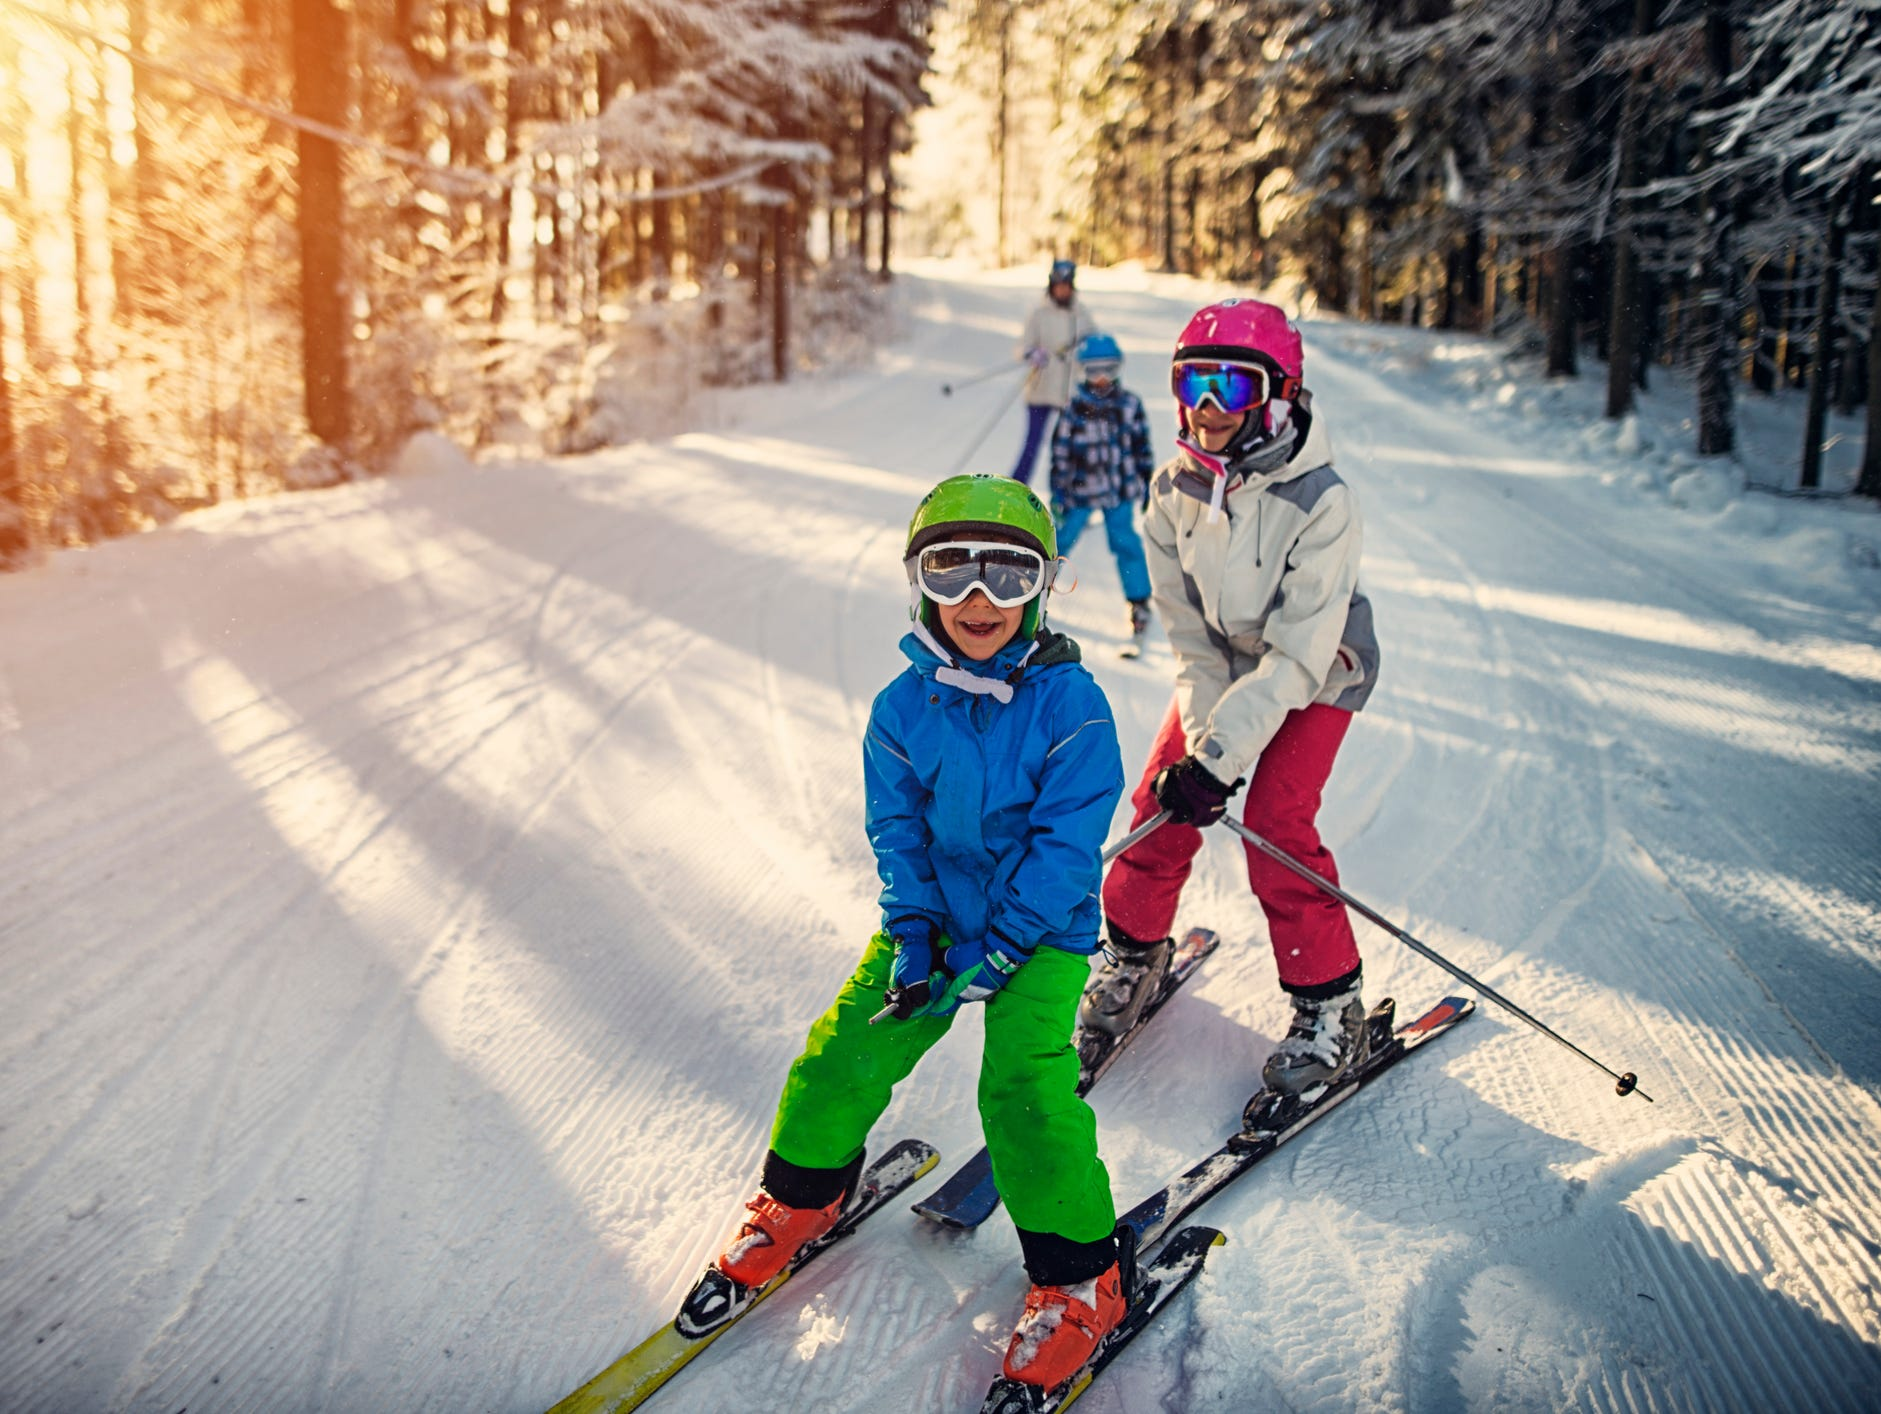 Save up to 50% on lift tickets and rentals nationwide.